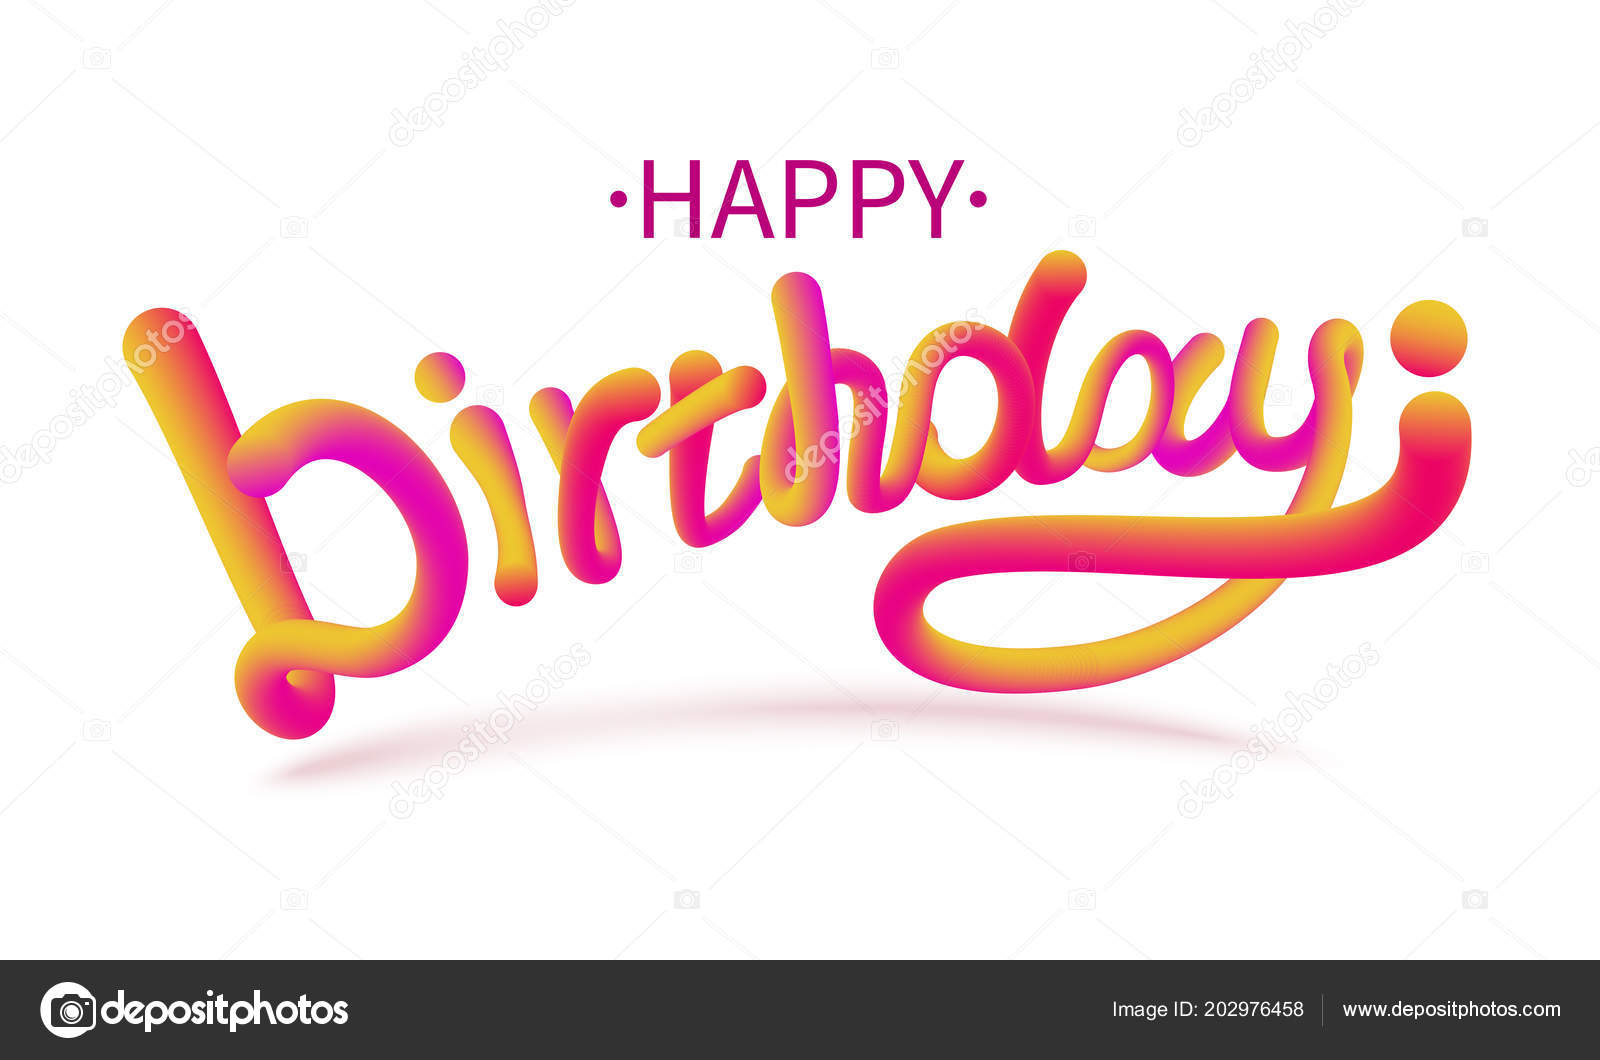 Images: happy birthday fonts | Stock vector illustration